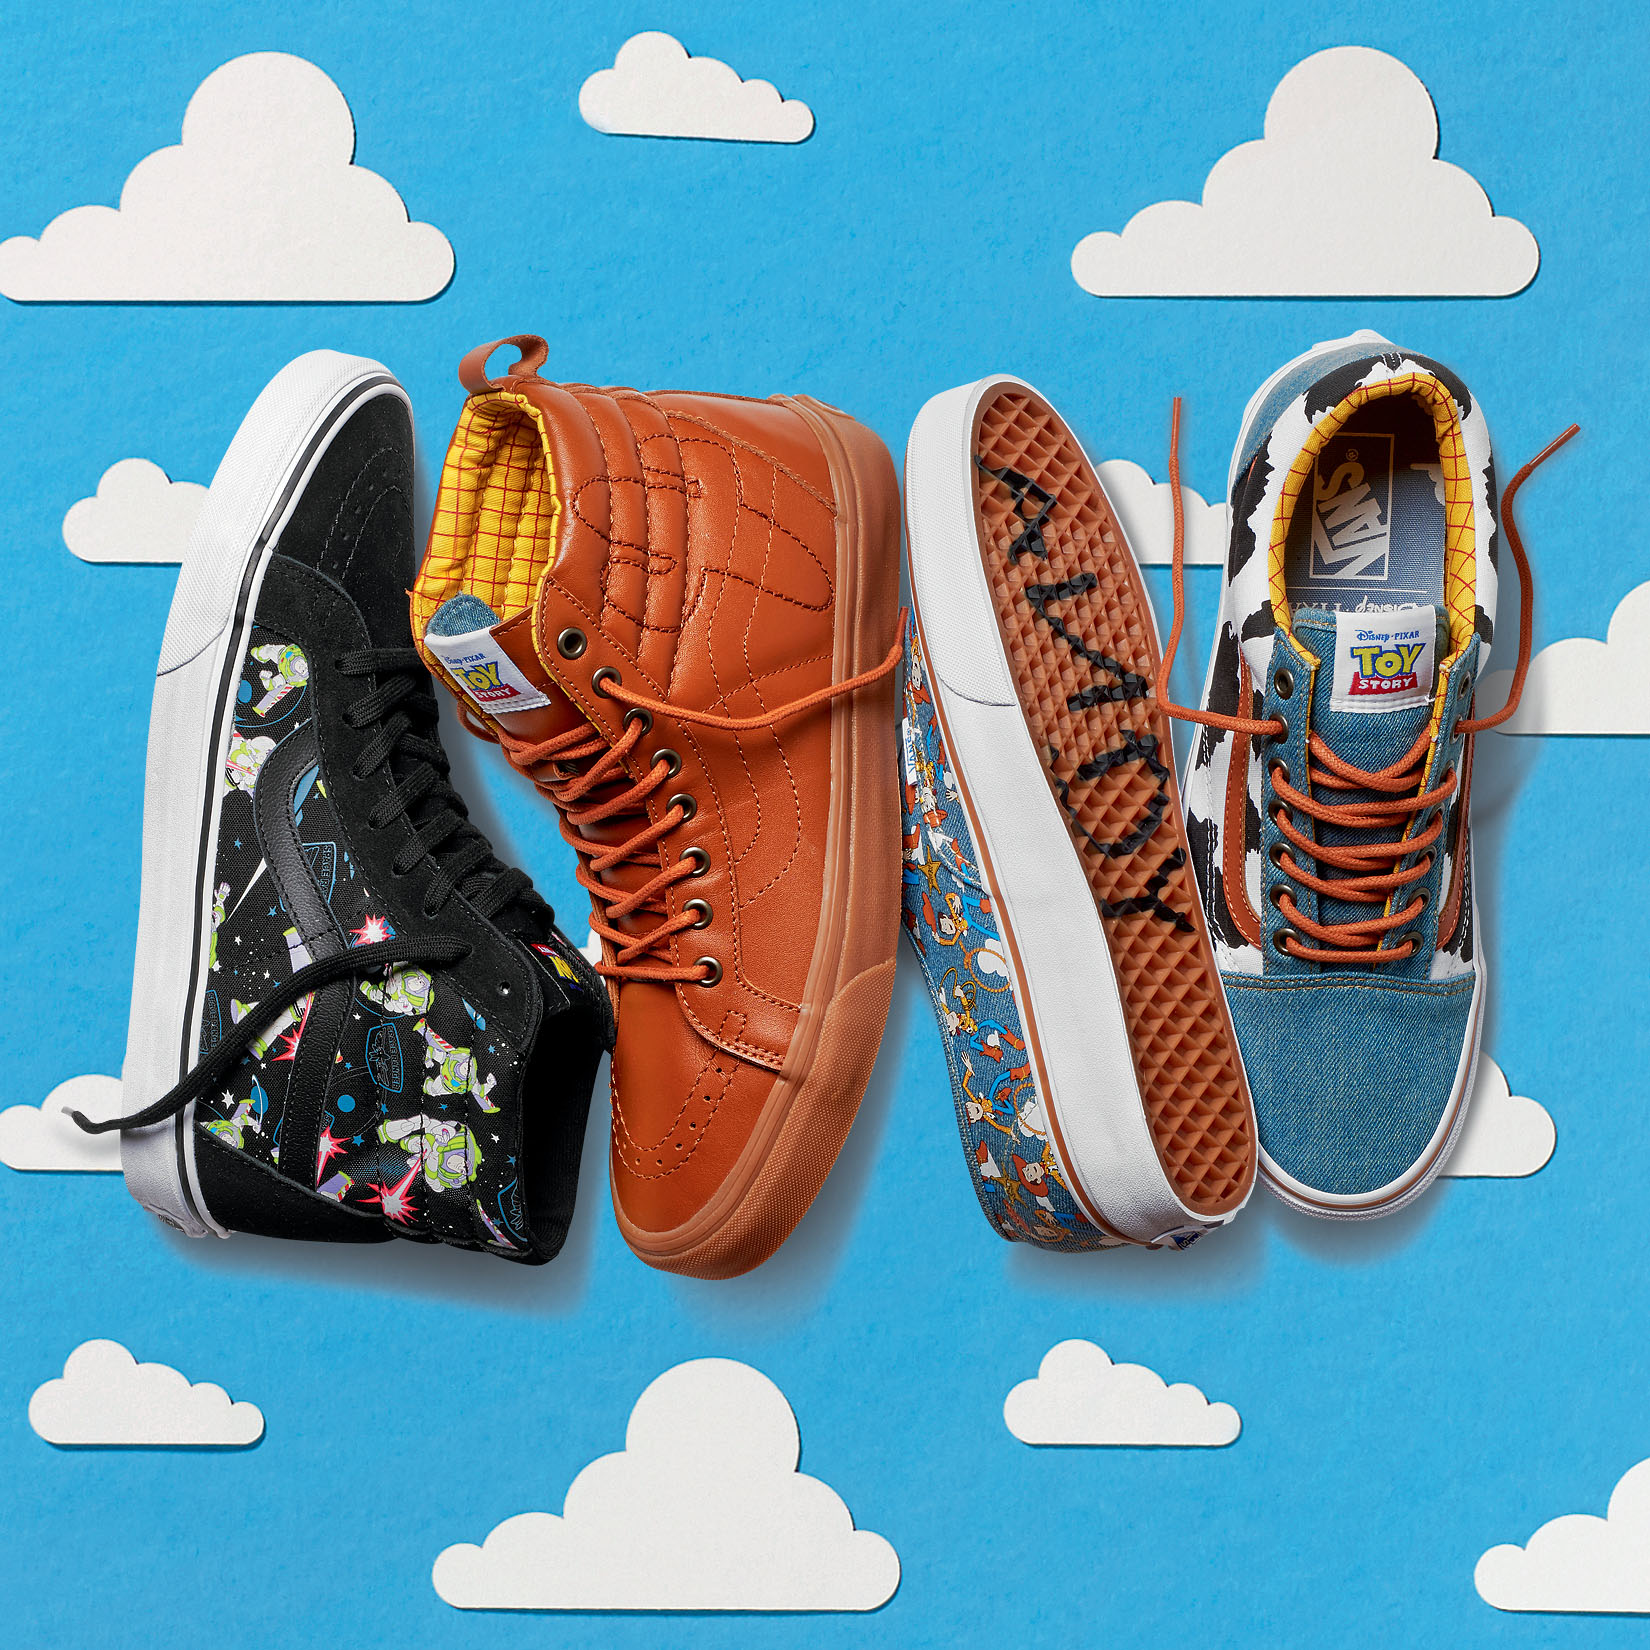 Vans Toy Story 3 3